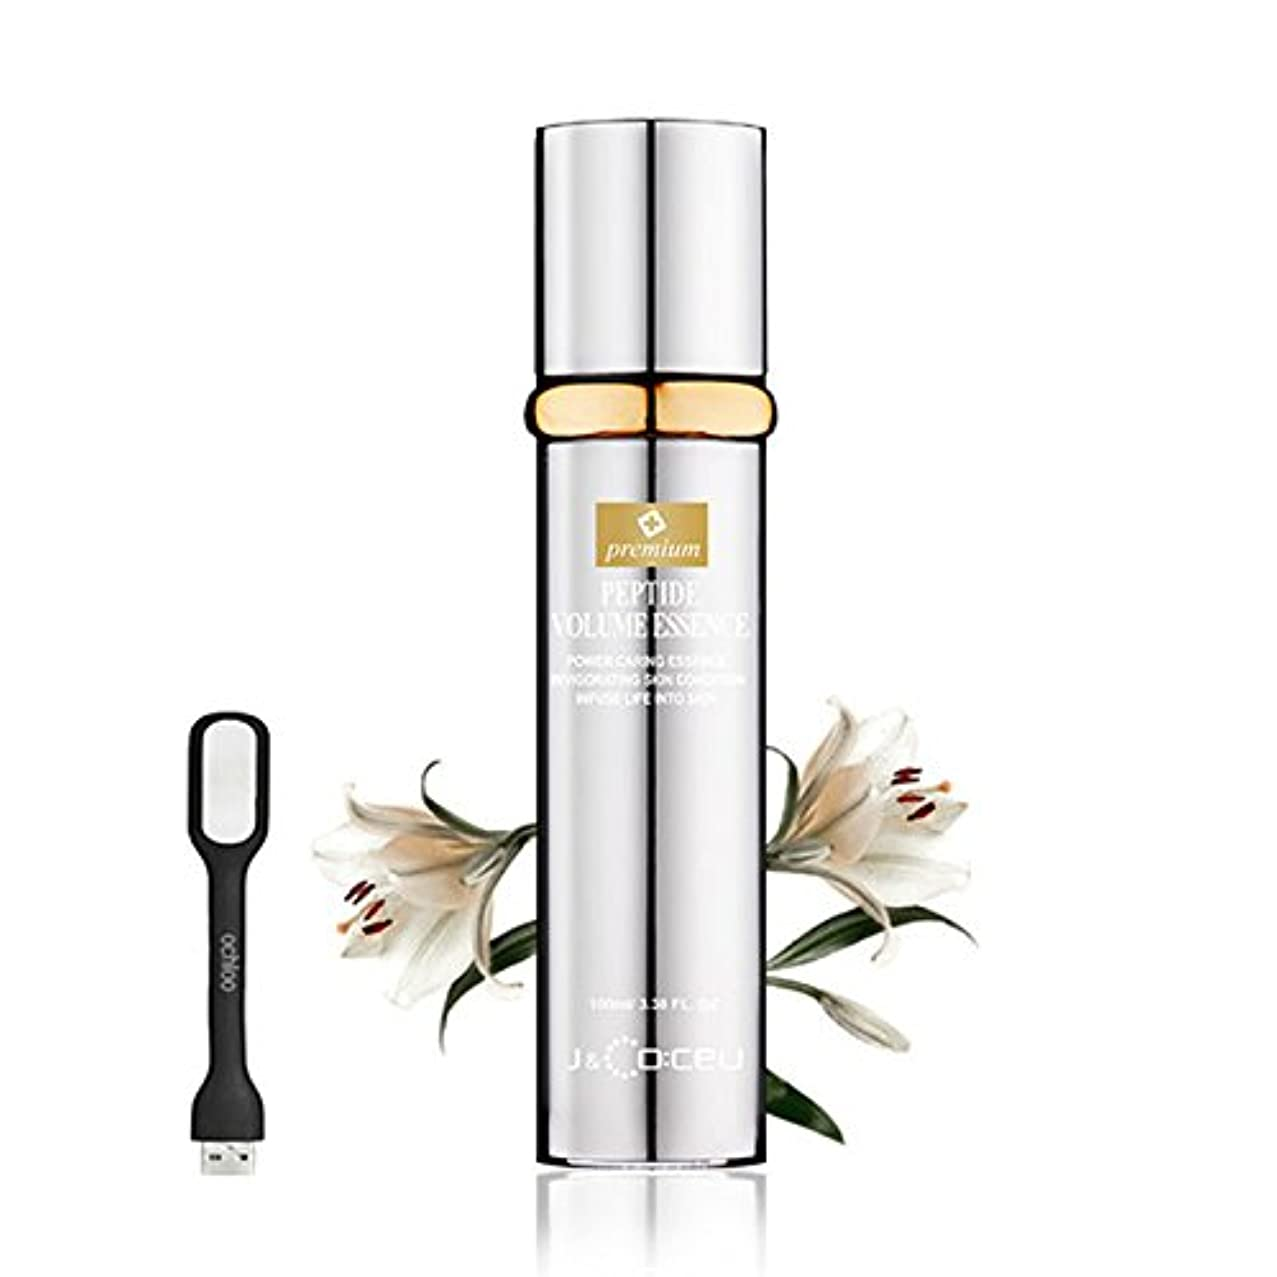 三番不忠小切手Premium Peptide Volume Essence 100ml: Upgraded Cosmetic Botox Anti-Wrinkle Essence All in One Wrinkle-care Firming...